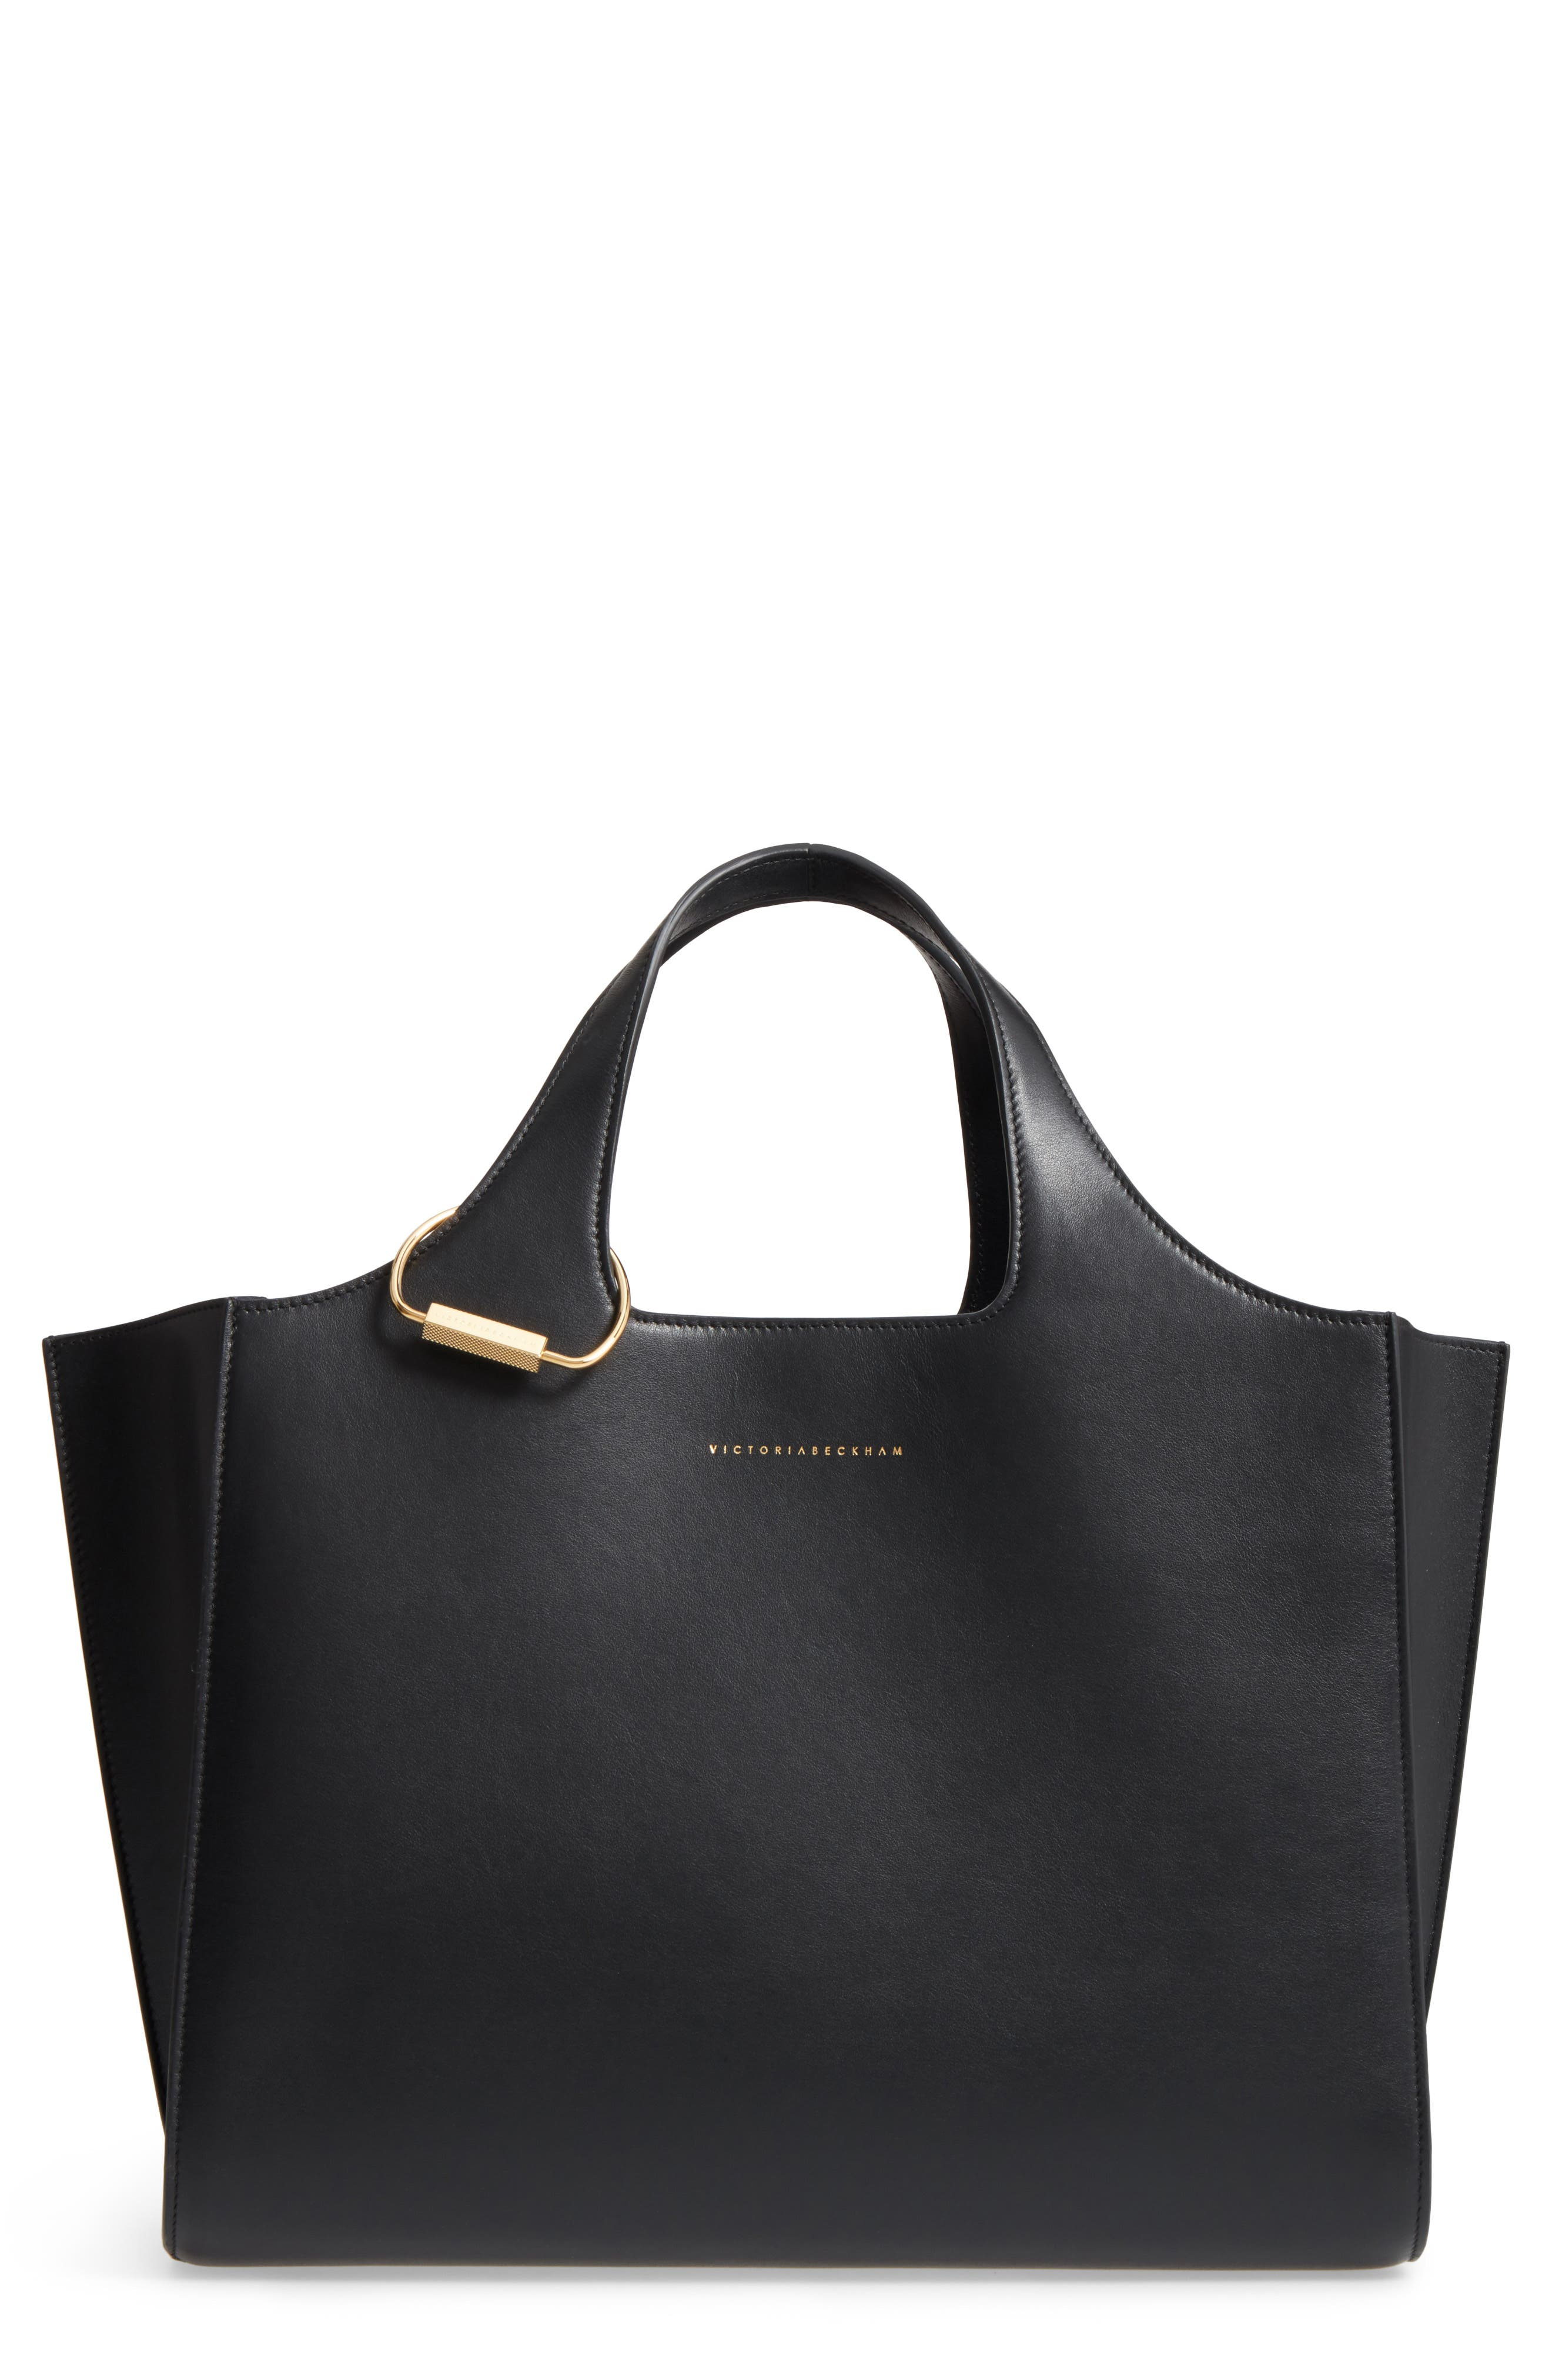 Victoria Beckham Newspaper Leather Tote